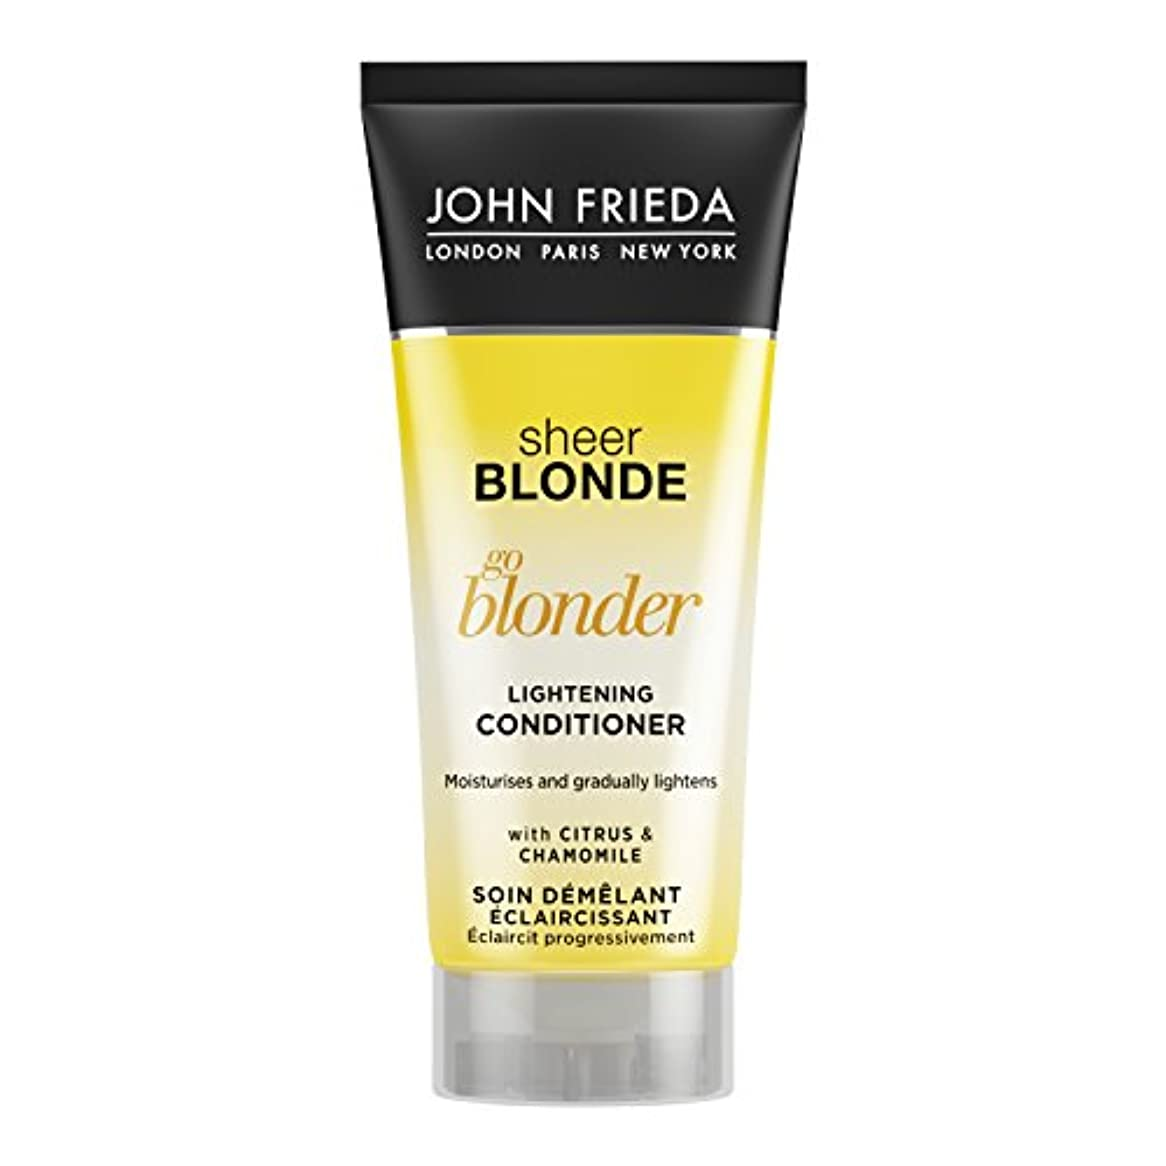 粗い崖ロープJohn Frieda Sheer Blonde Go Blonder Lightening Conditioner Travel Size 50ml